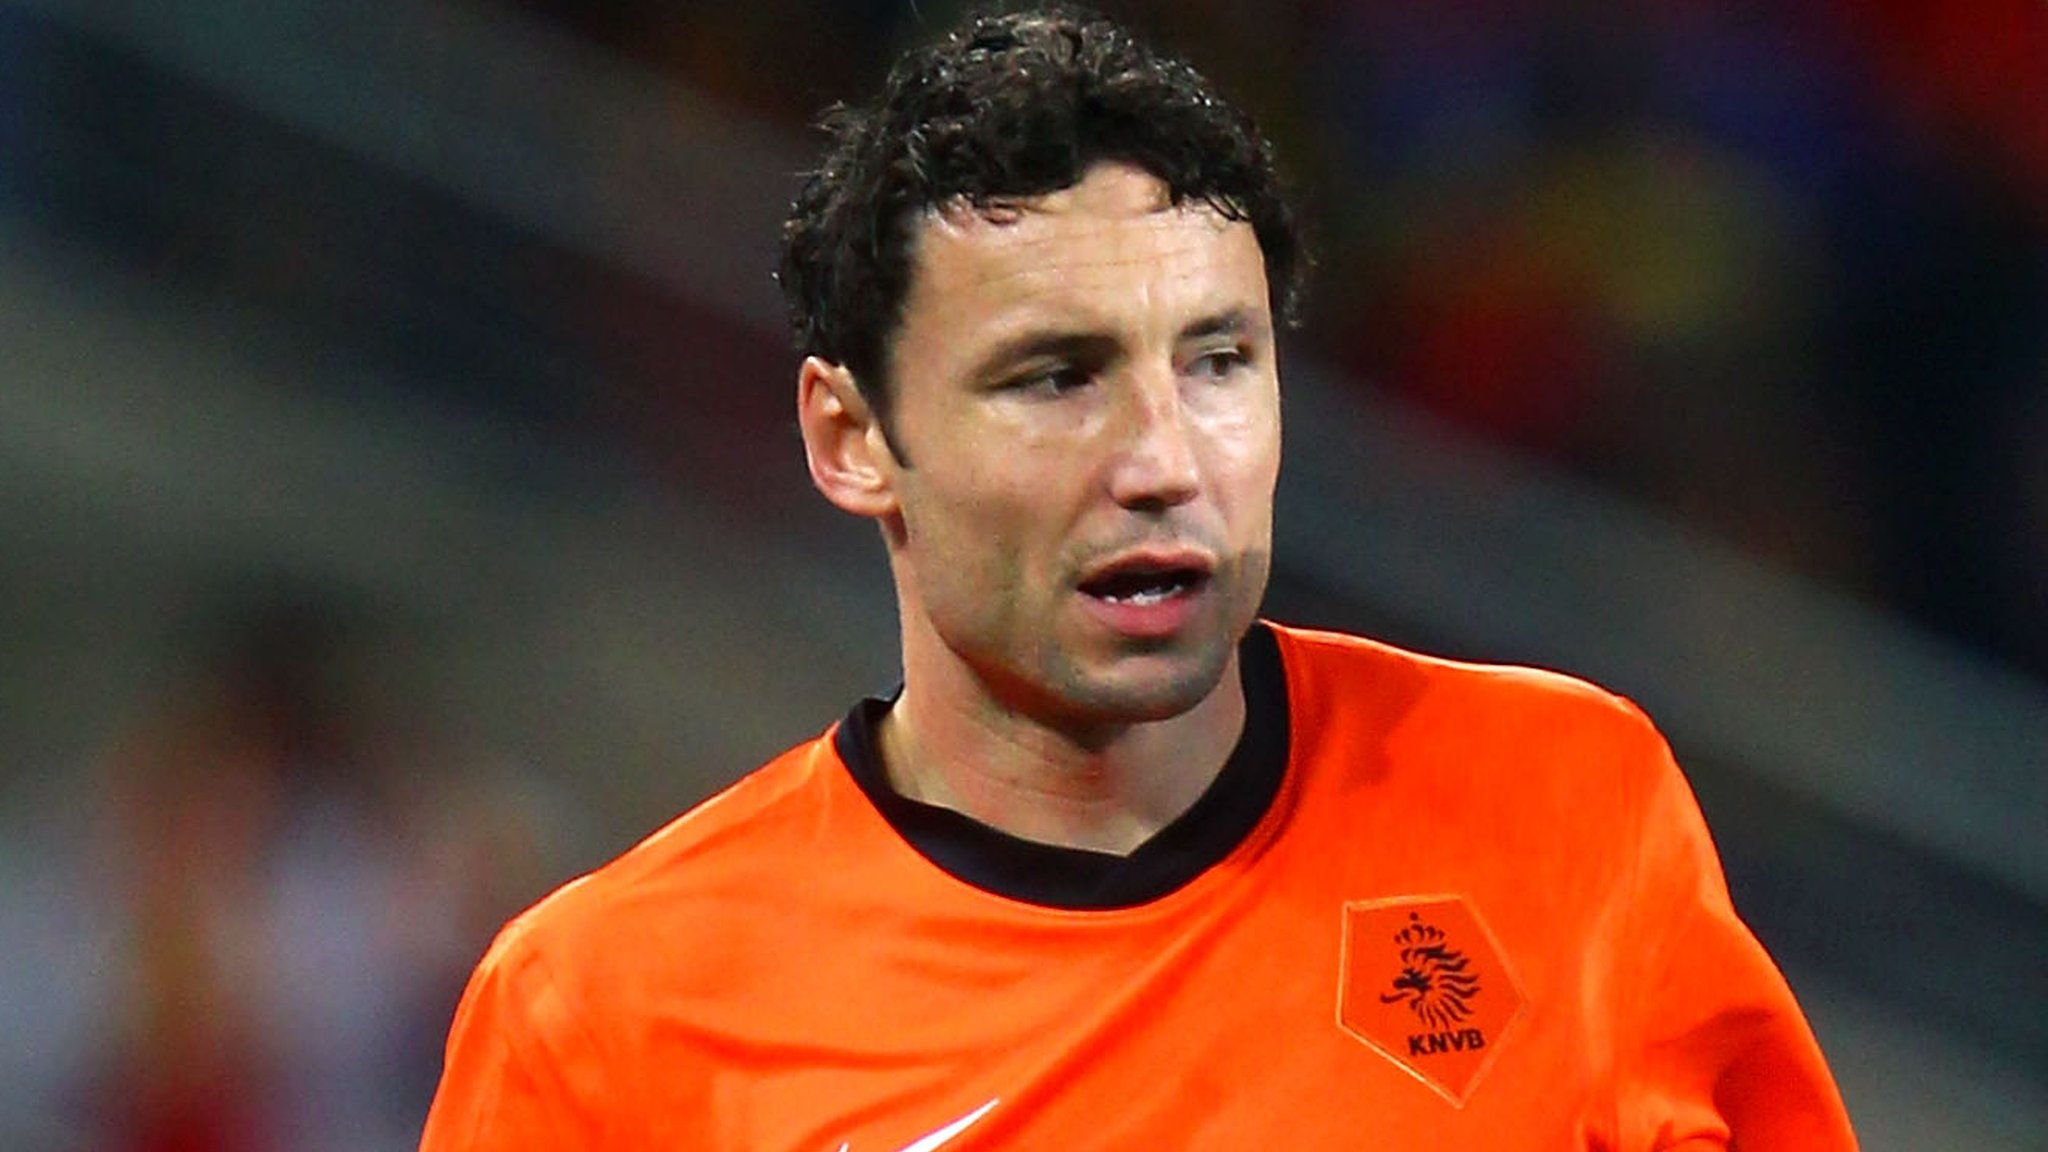 PSV Eindhoven: Mark van Bommel becomes new head coach